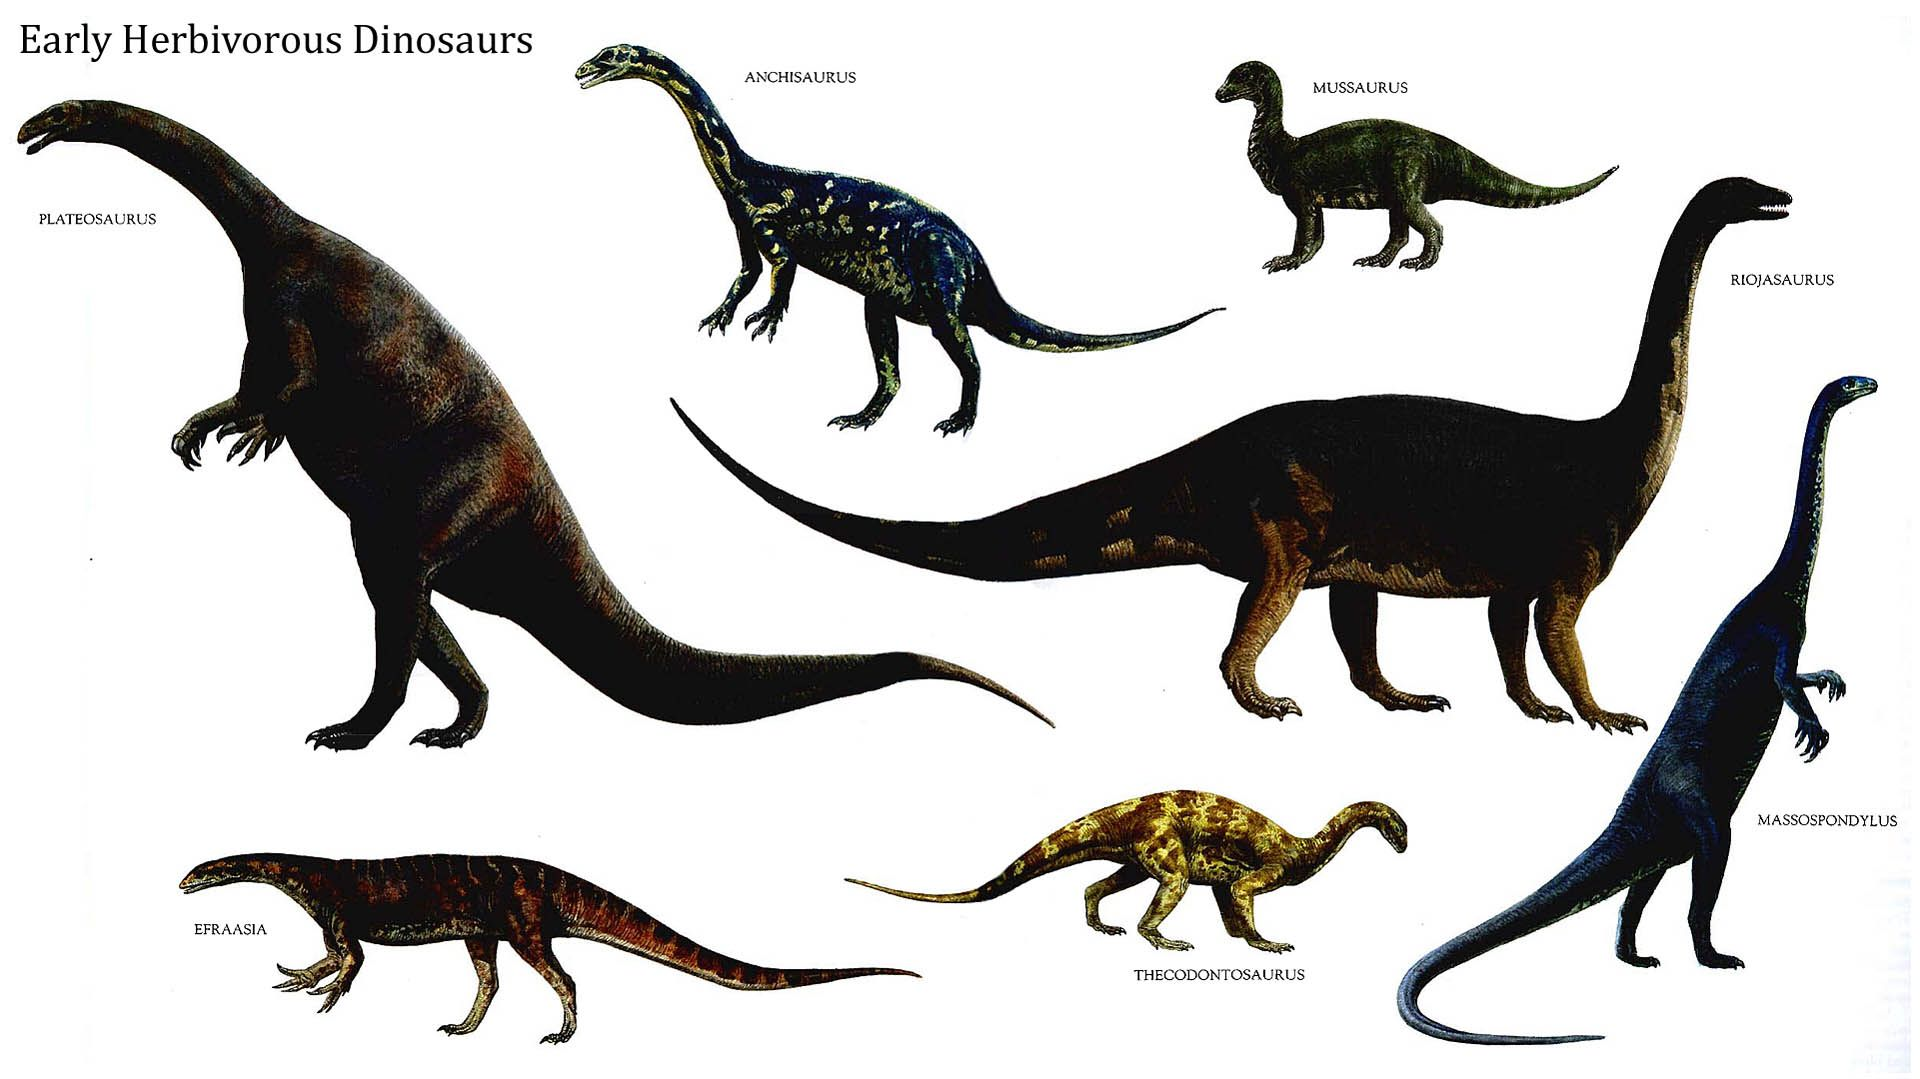 Image From Http Ayay Co Uk Backgrounds Dinosaurs Herbivore Early Herbivorous Dinosaurs Jpg Prehistoric Animals Dinosaur Pictures Dinosaur Images